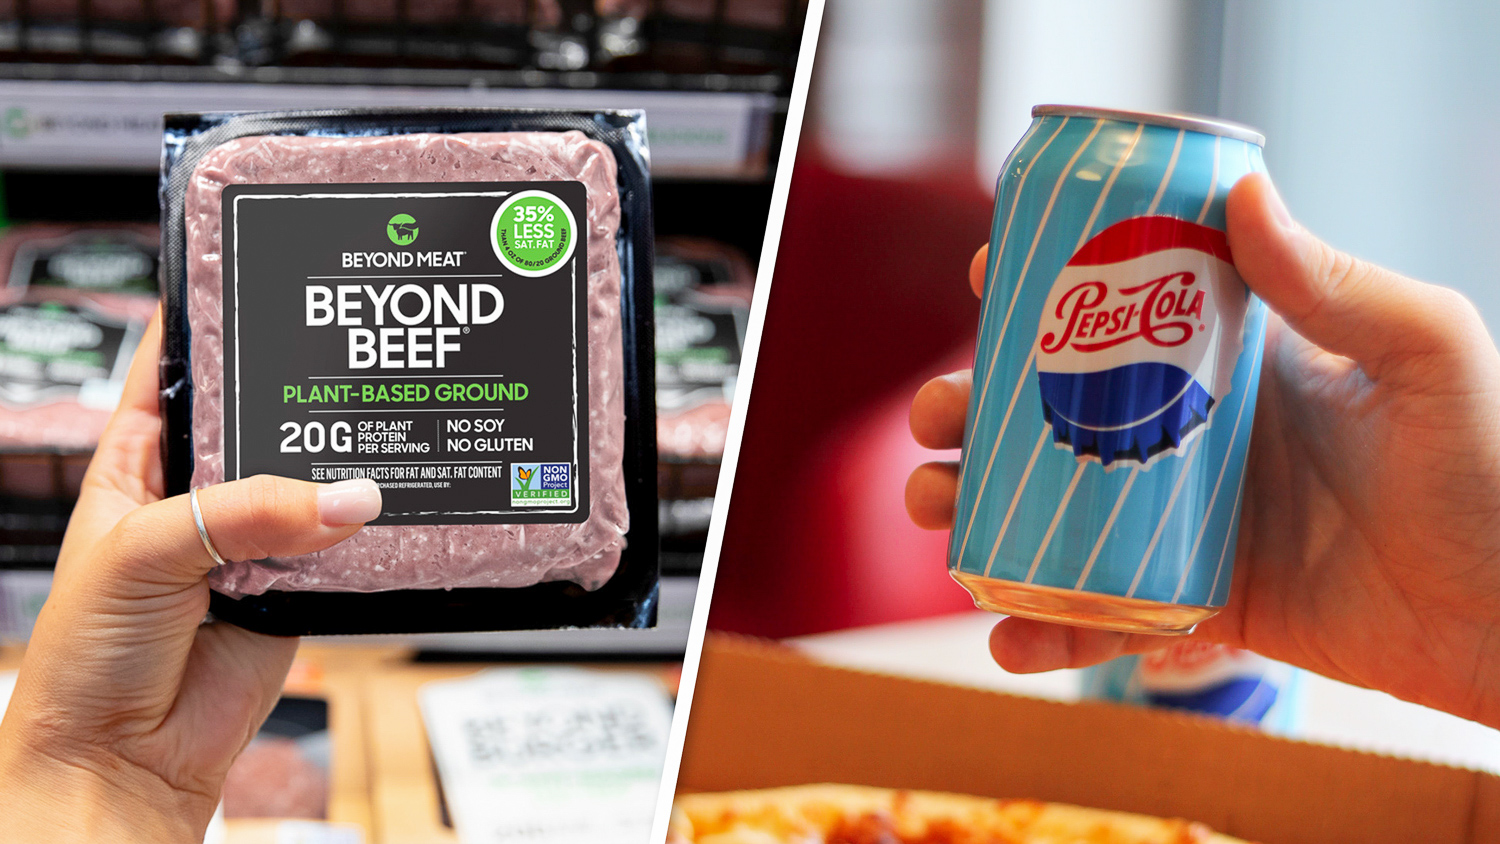 Beyond Meat Stocks Rise 31% With New Pepsi Partnership